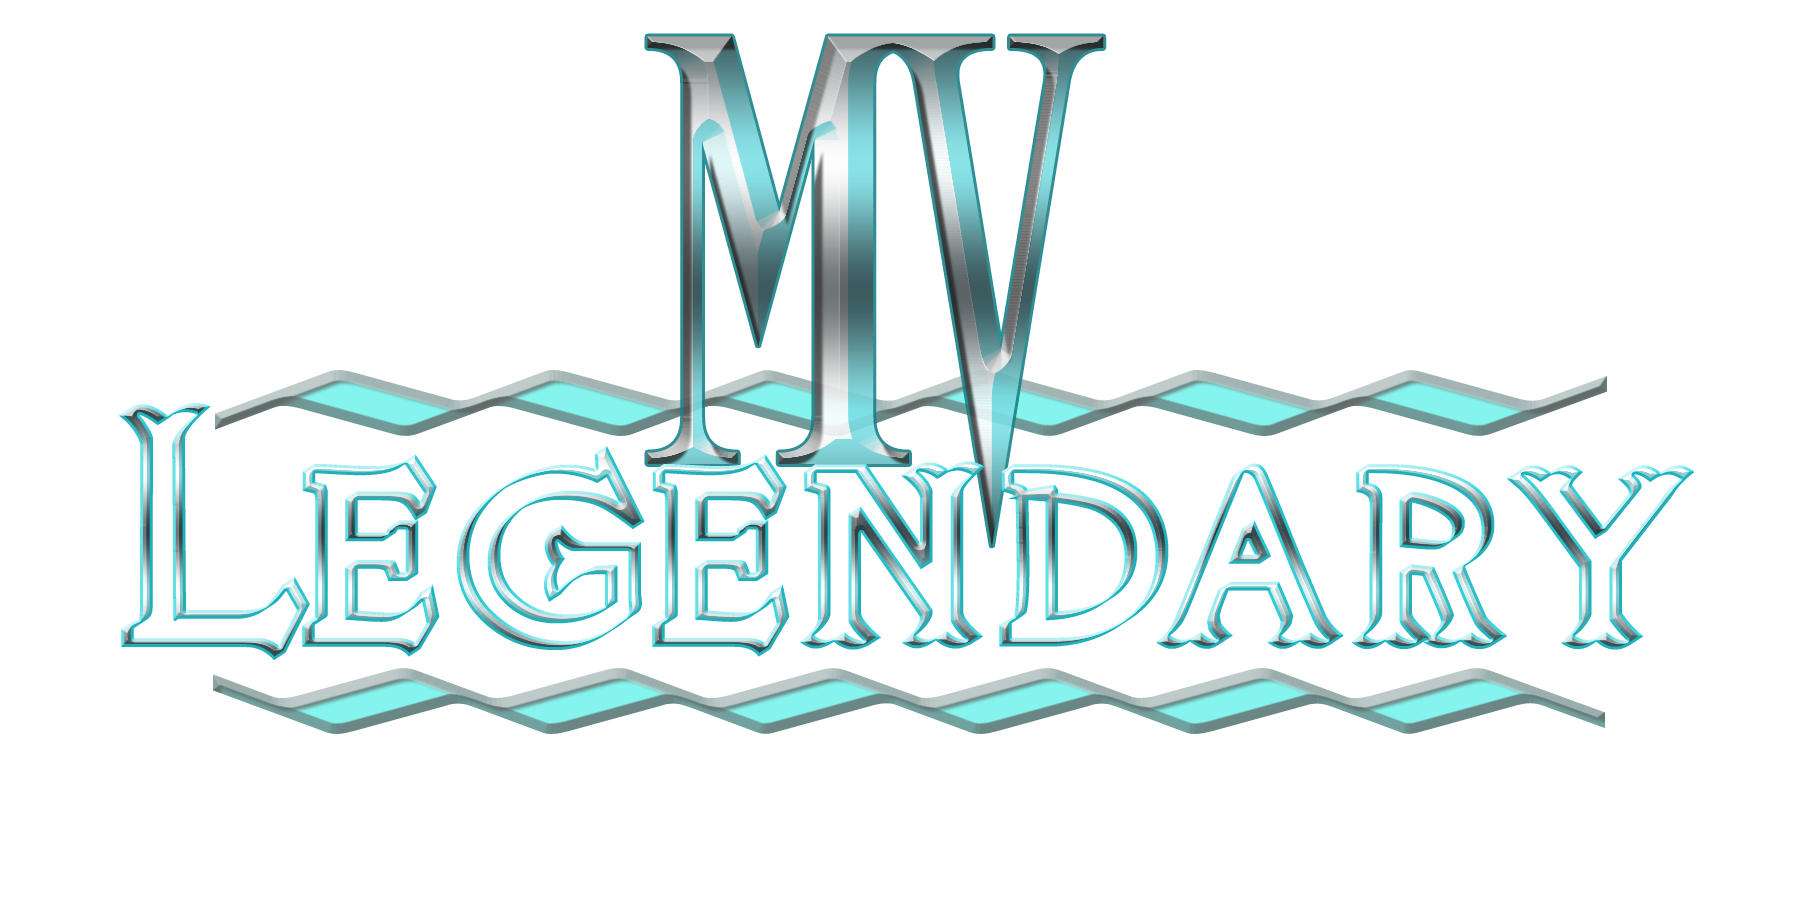 MV Legendary Logo